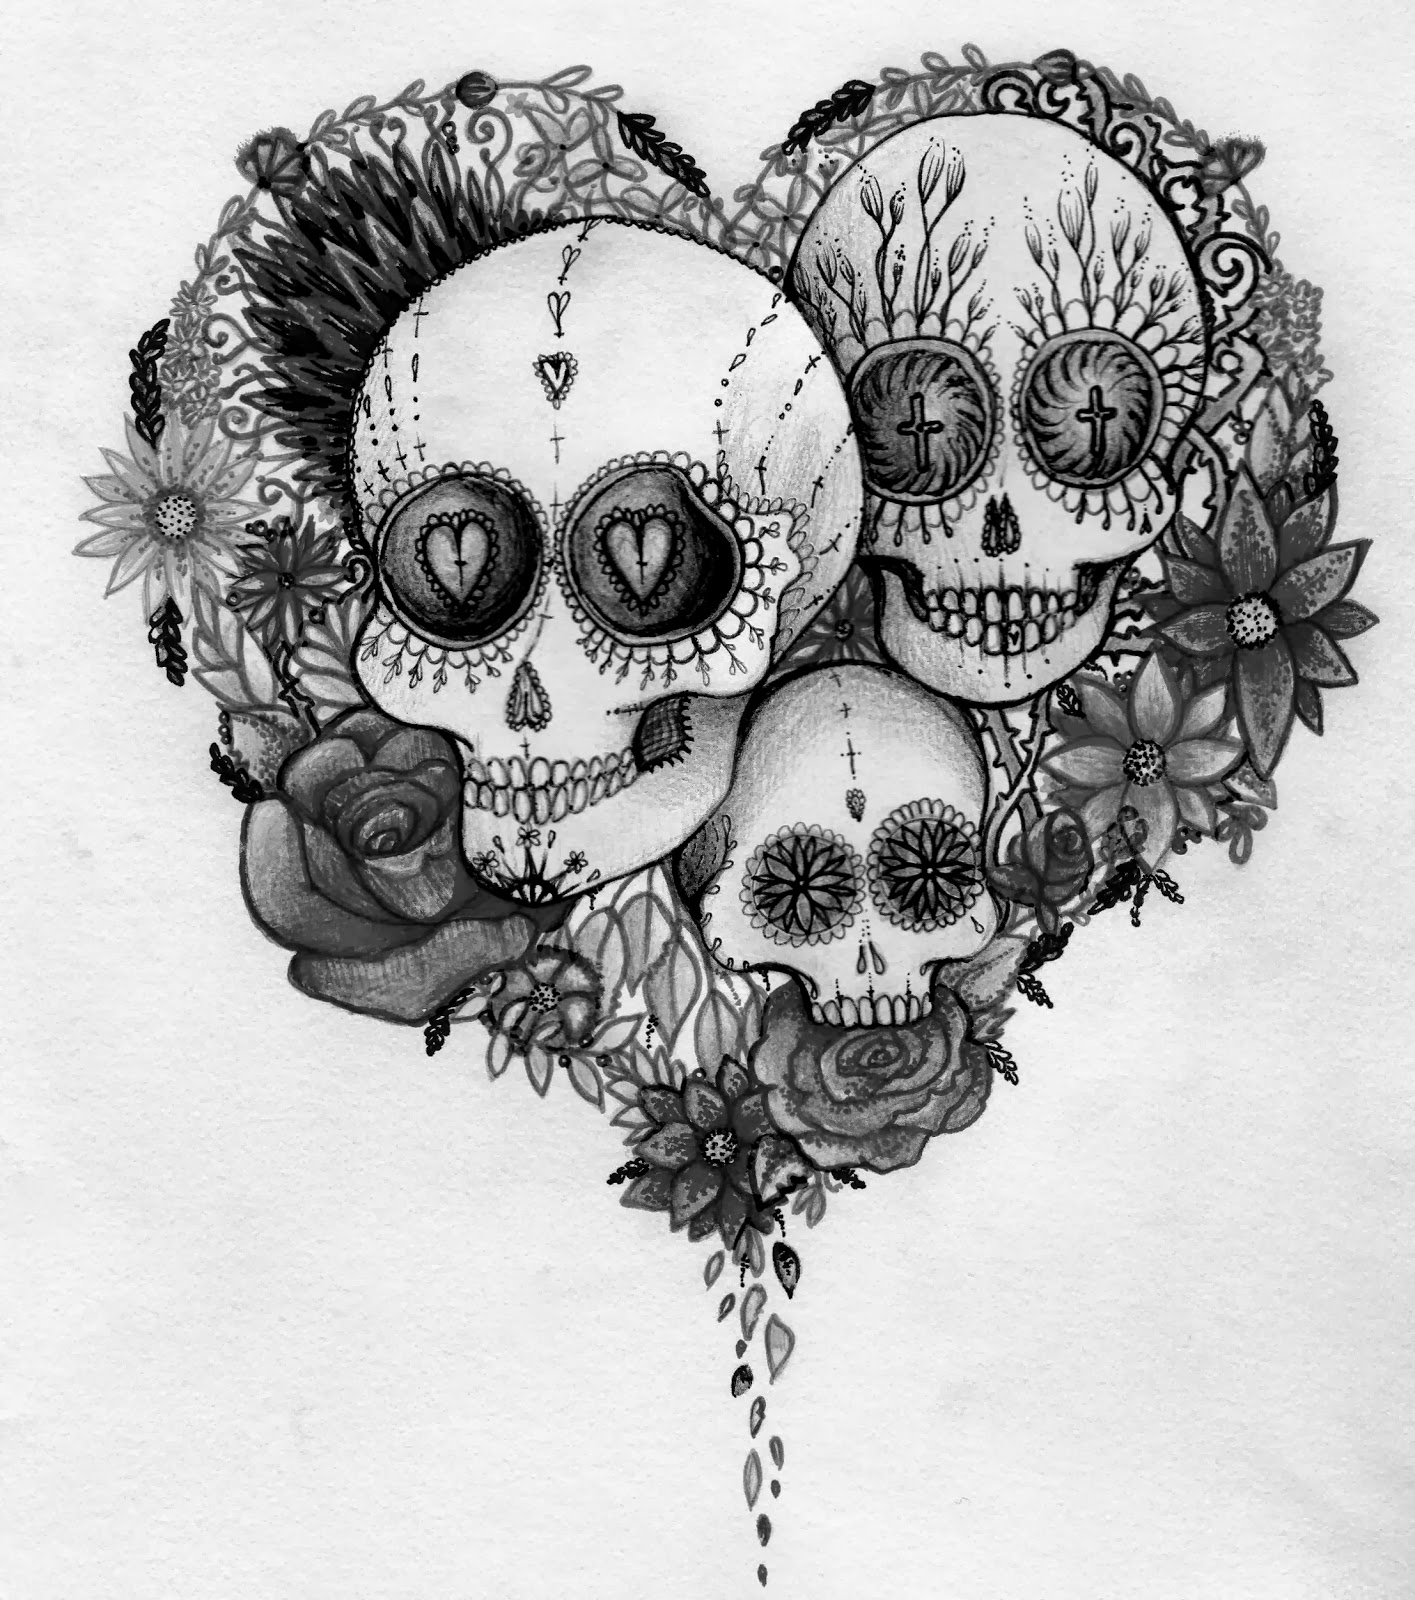 pictures of sugar skulls day of the dead sugar skull day of the dead skull skulls of sugar pictures